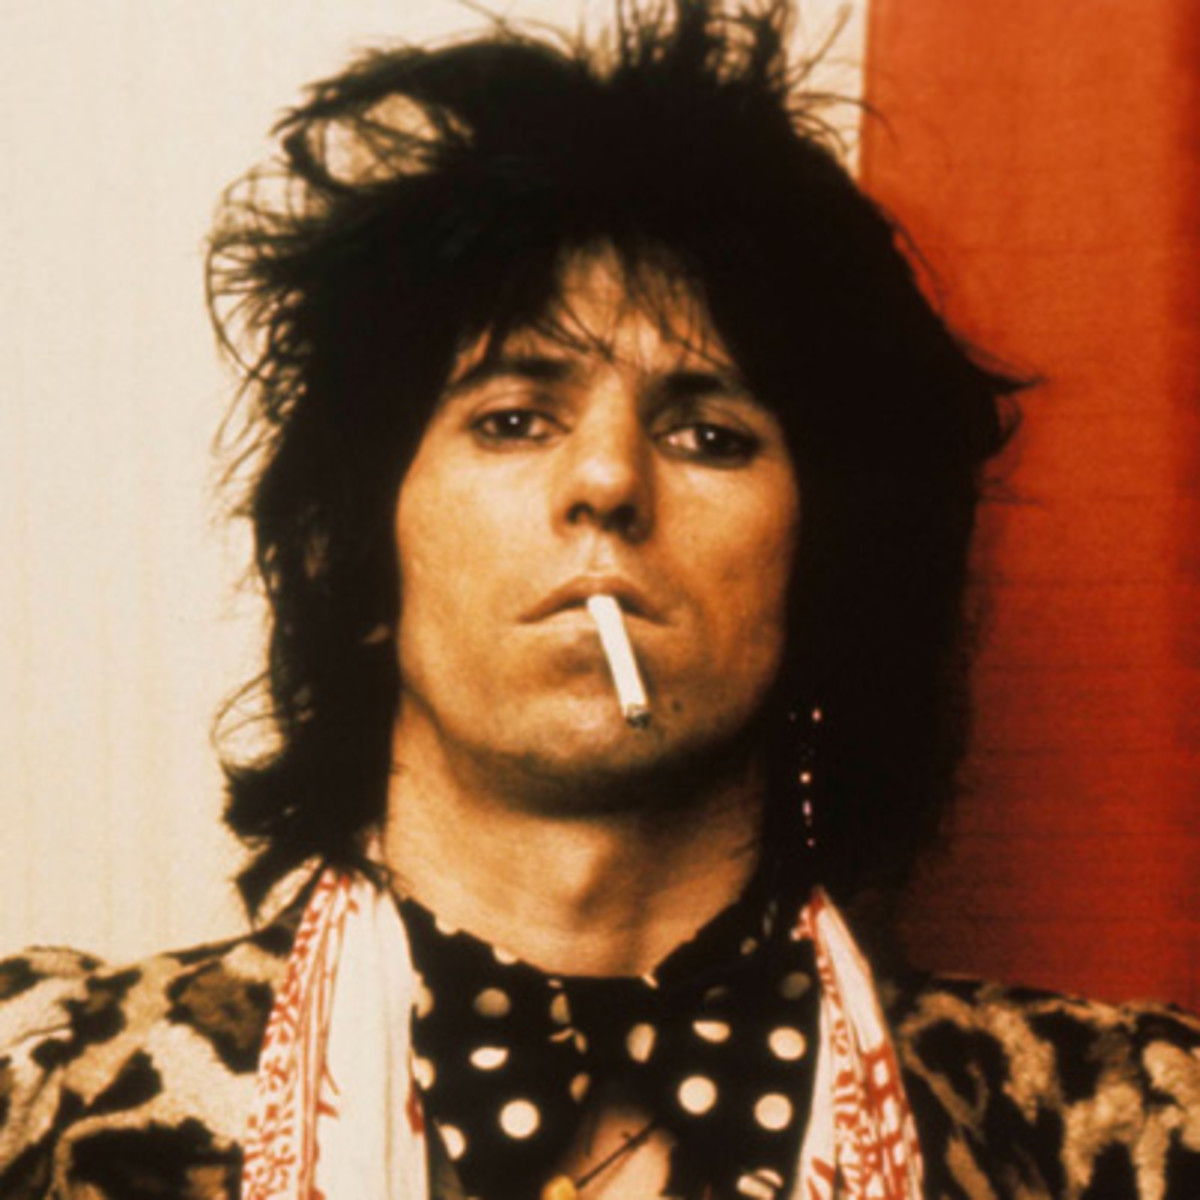 Keith Richards Guitarist Songwriter Biography